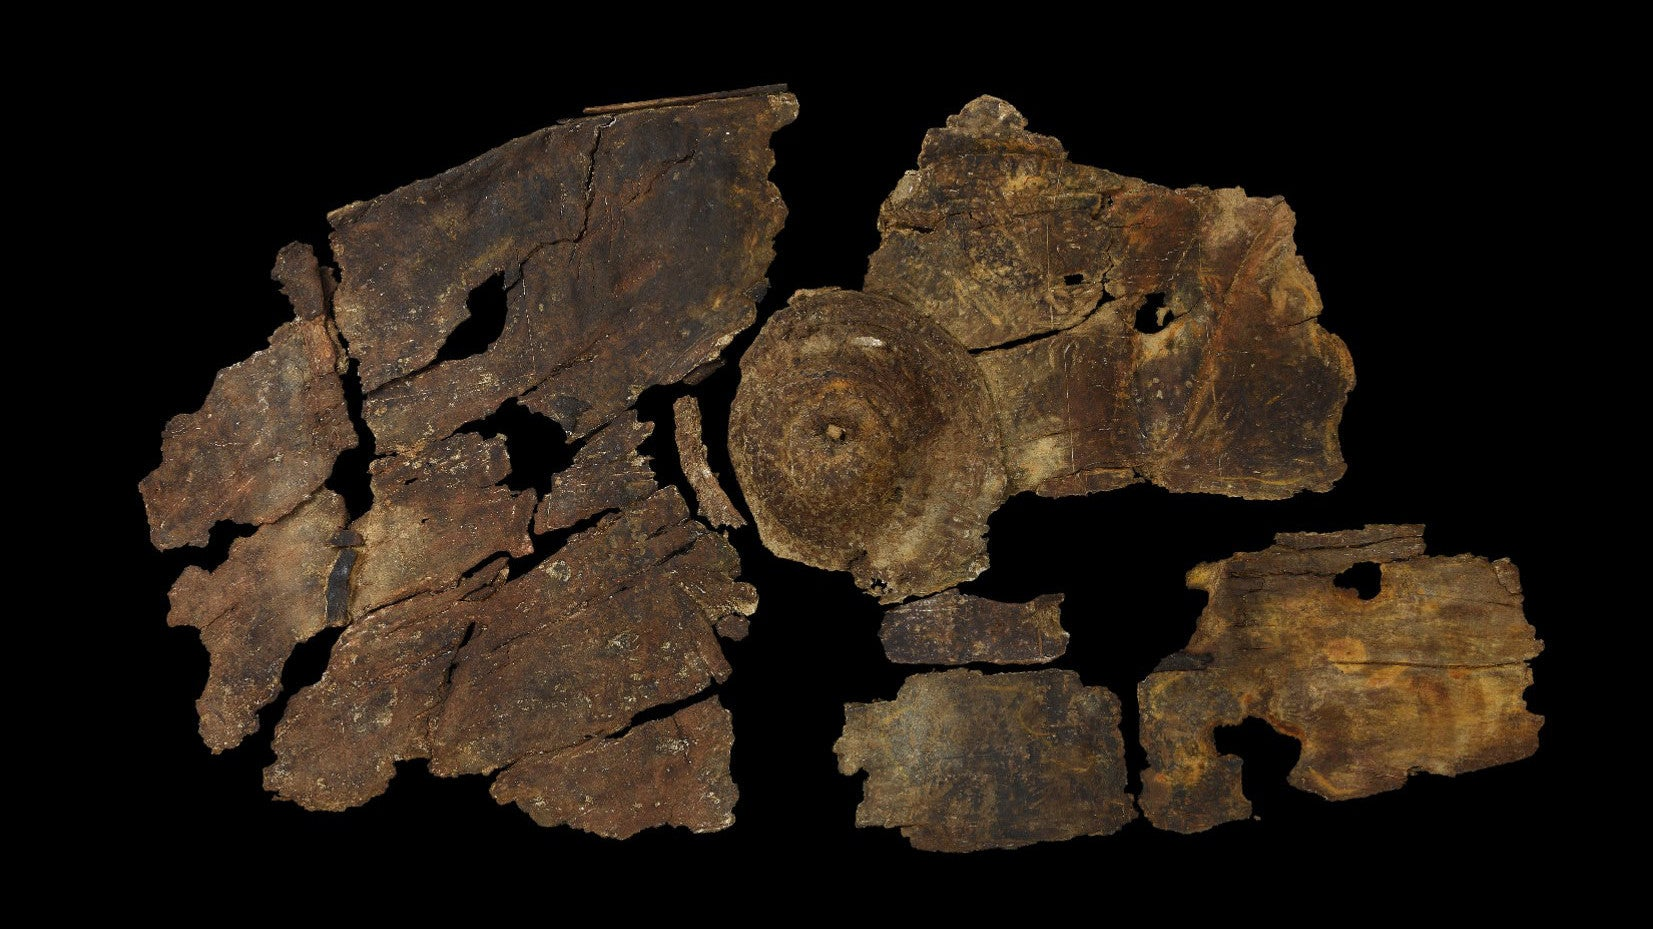 iron-age lost-technology no-mid-article shields weapons